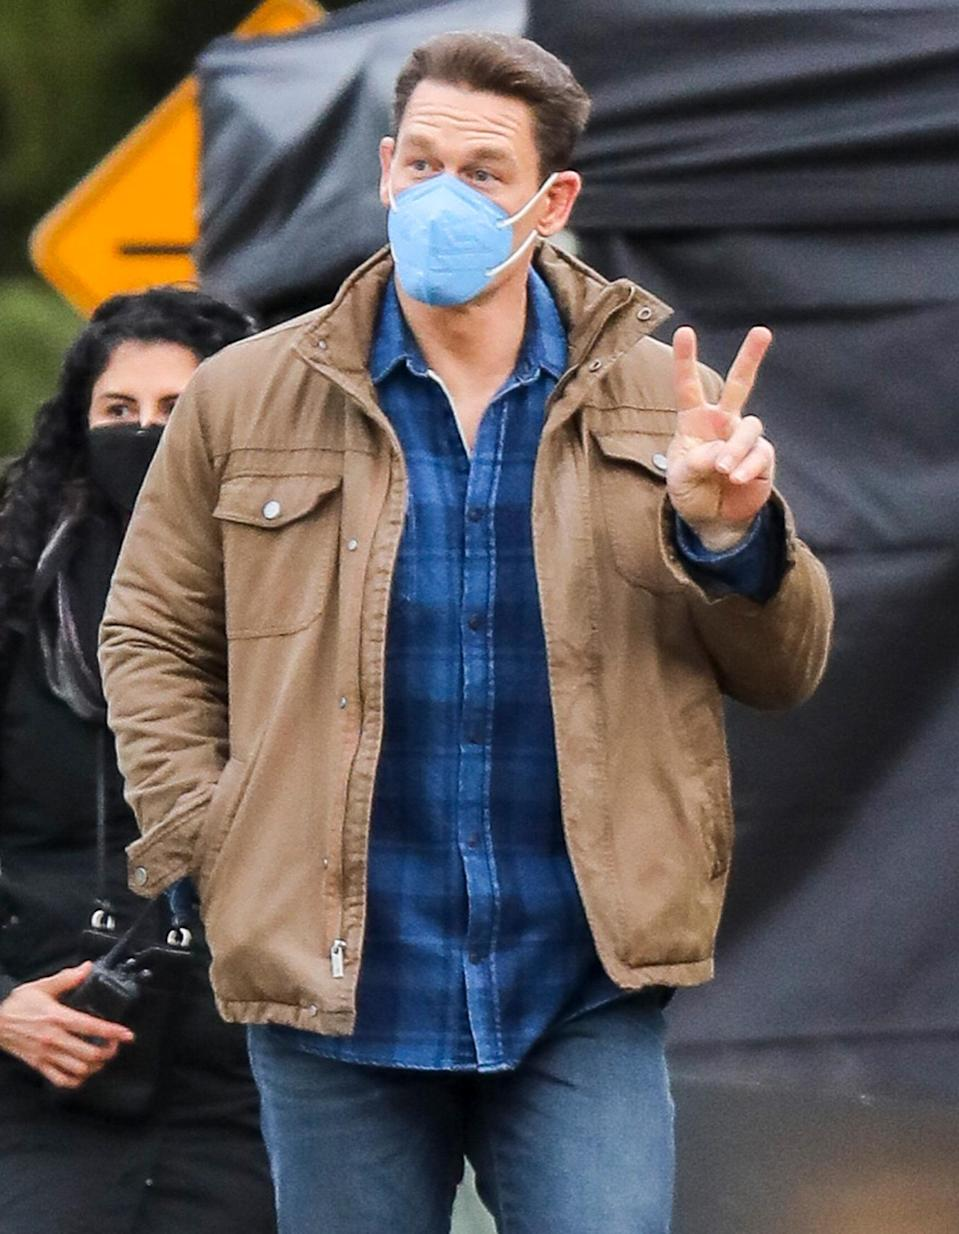 <p>John Cena flashes a peace sign on the set of <em>The Peacemaker</em> on Tuesday in Vancouver.</p>